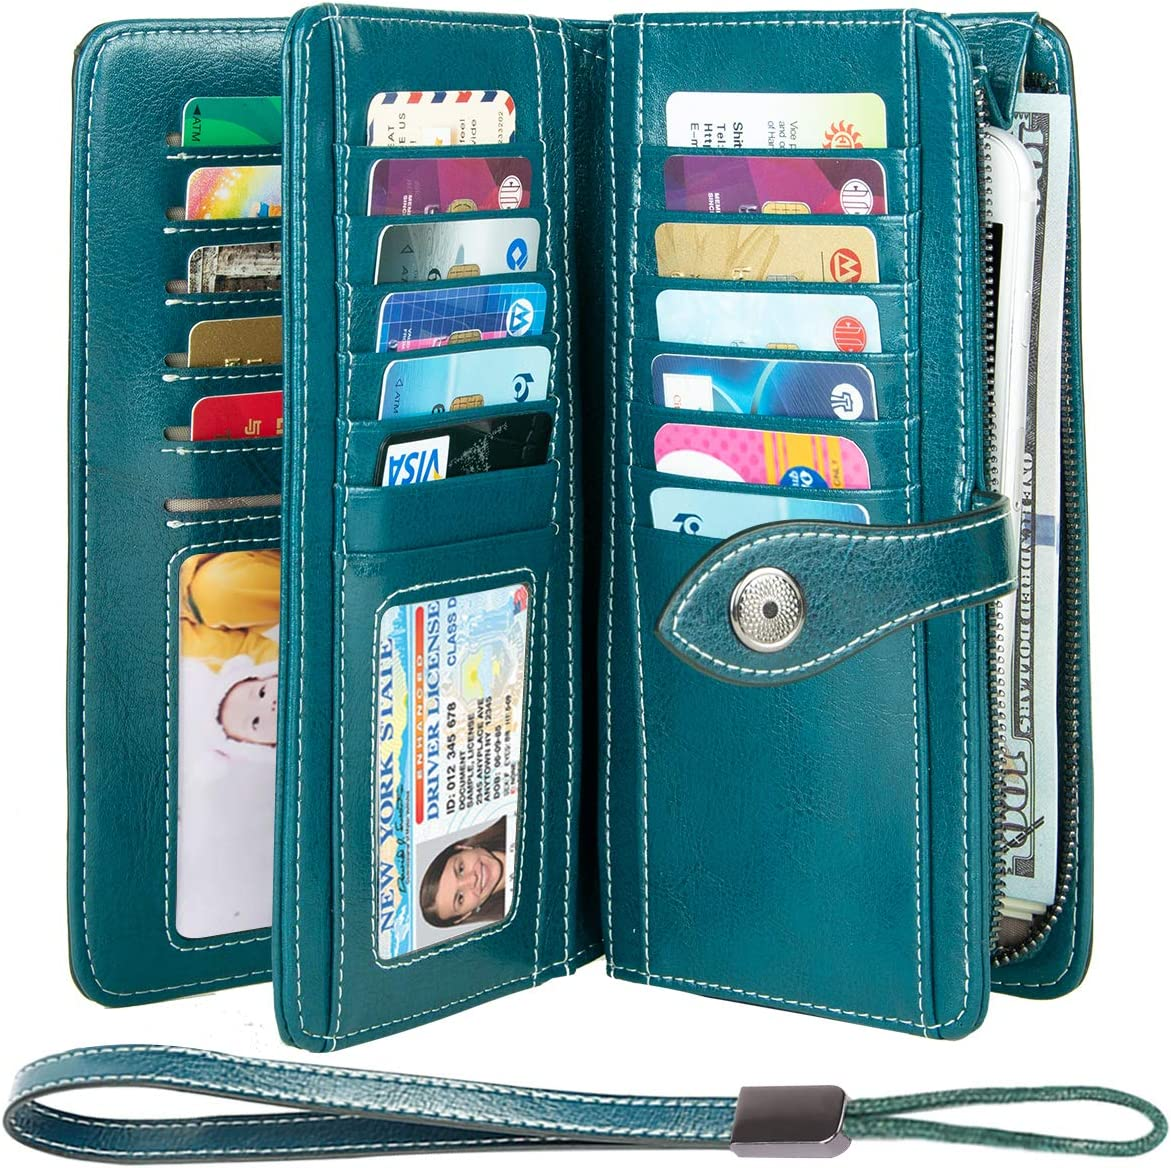 HUANLANG Large Womens Wallet Leather Vintage RFID Blocking Ladies Credit Card Clutch Wallets for Women with Wrist Strap